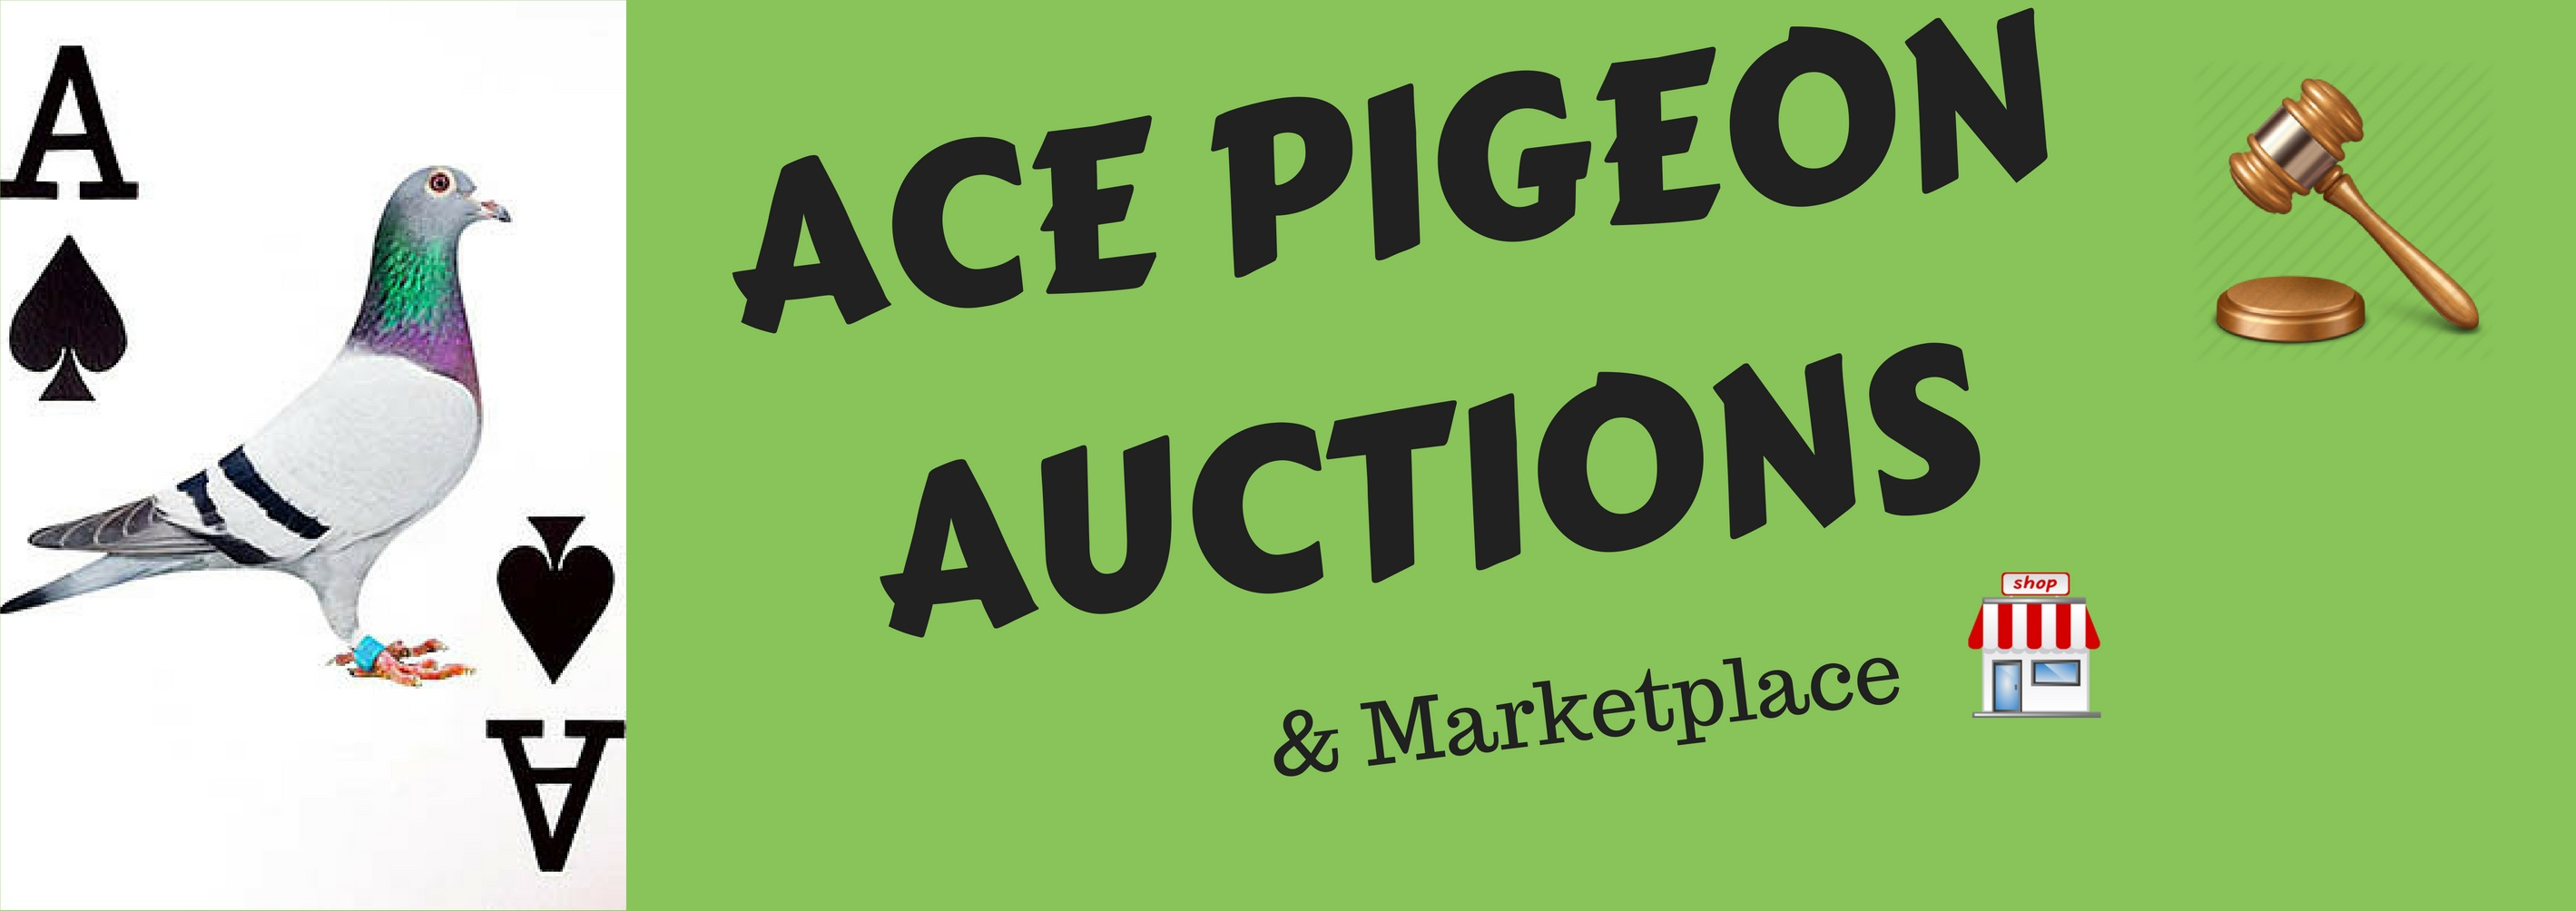 ACE PIGEON AUCTIONS